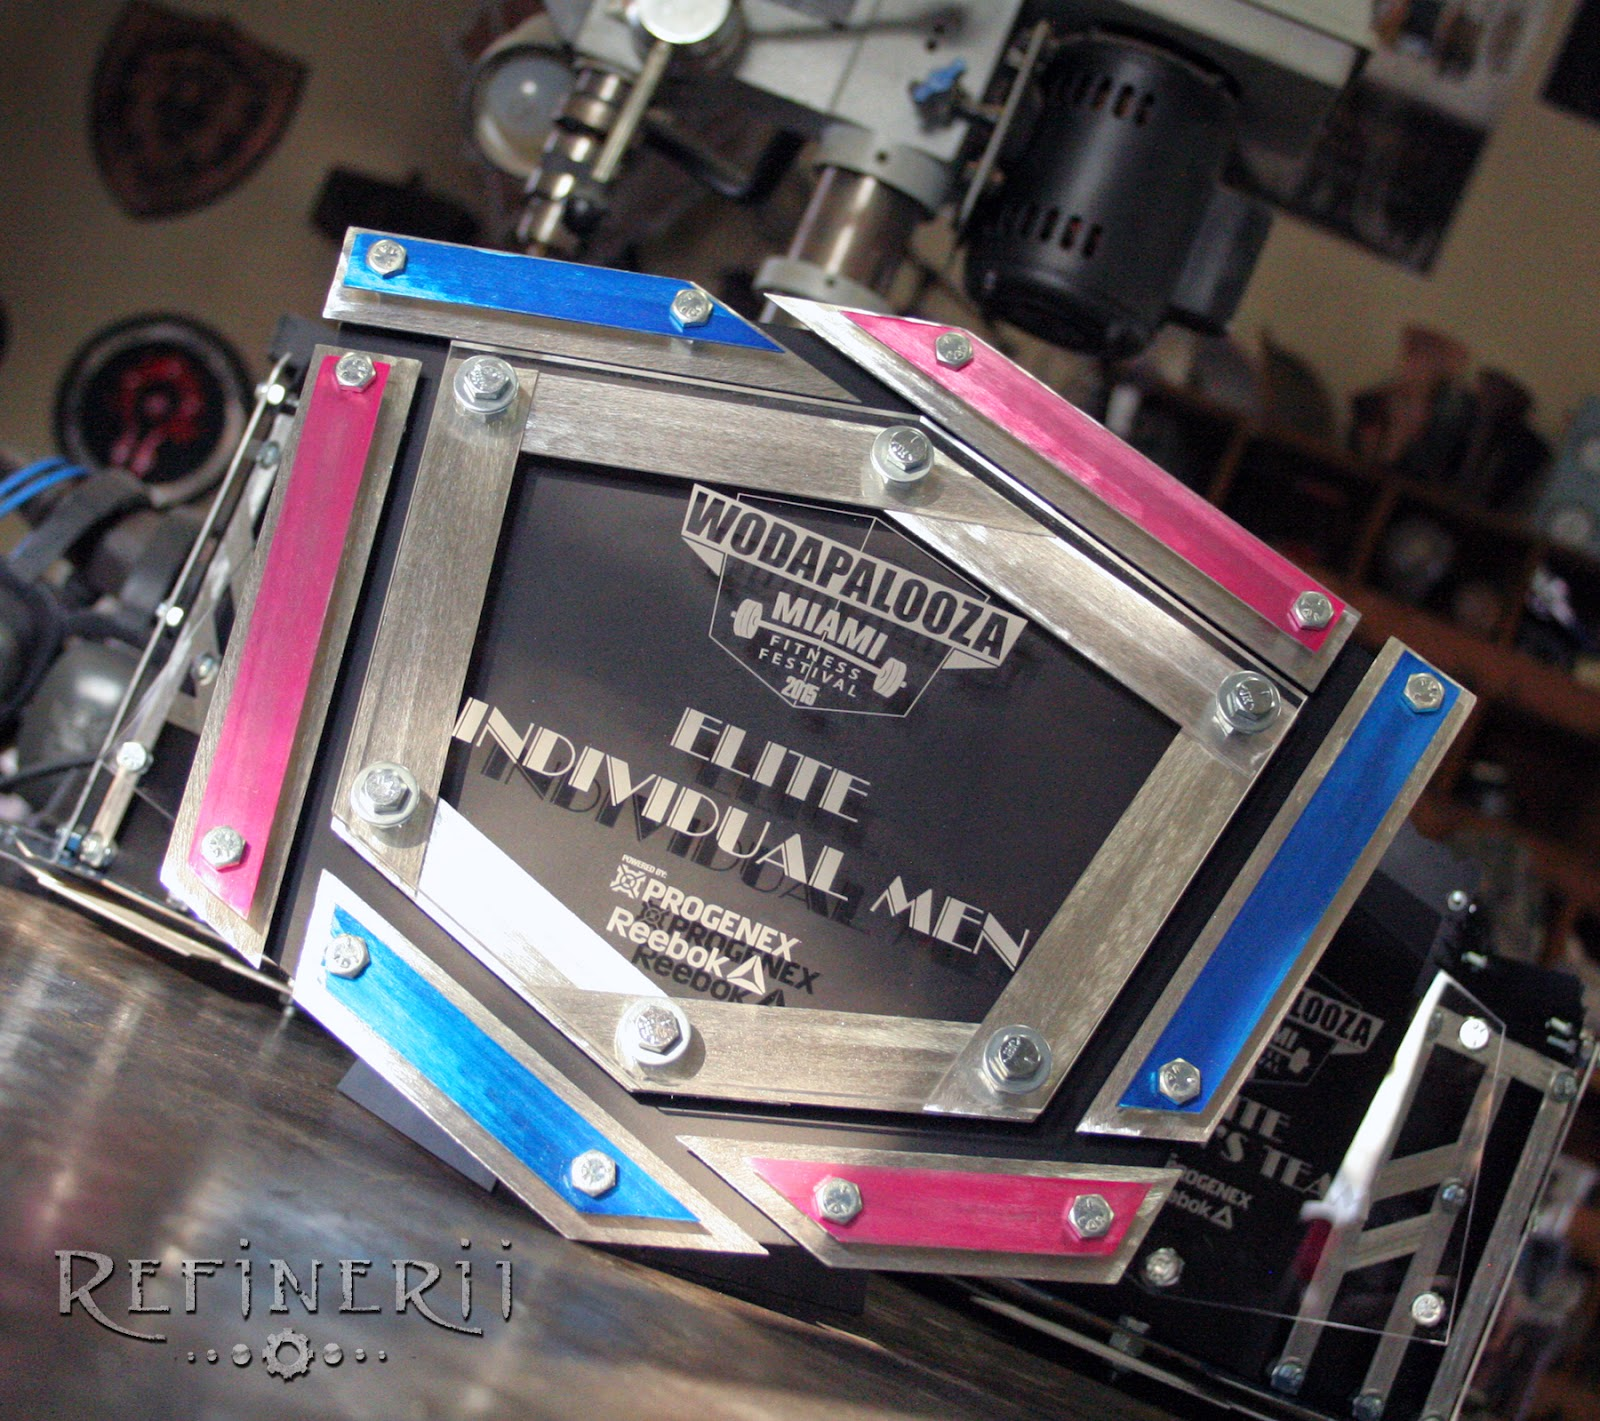 Custom Trophied created from metal for the Wodapalooza Fitness Festival 2015.  www.refinerii.net